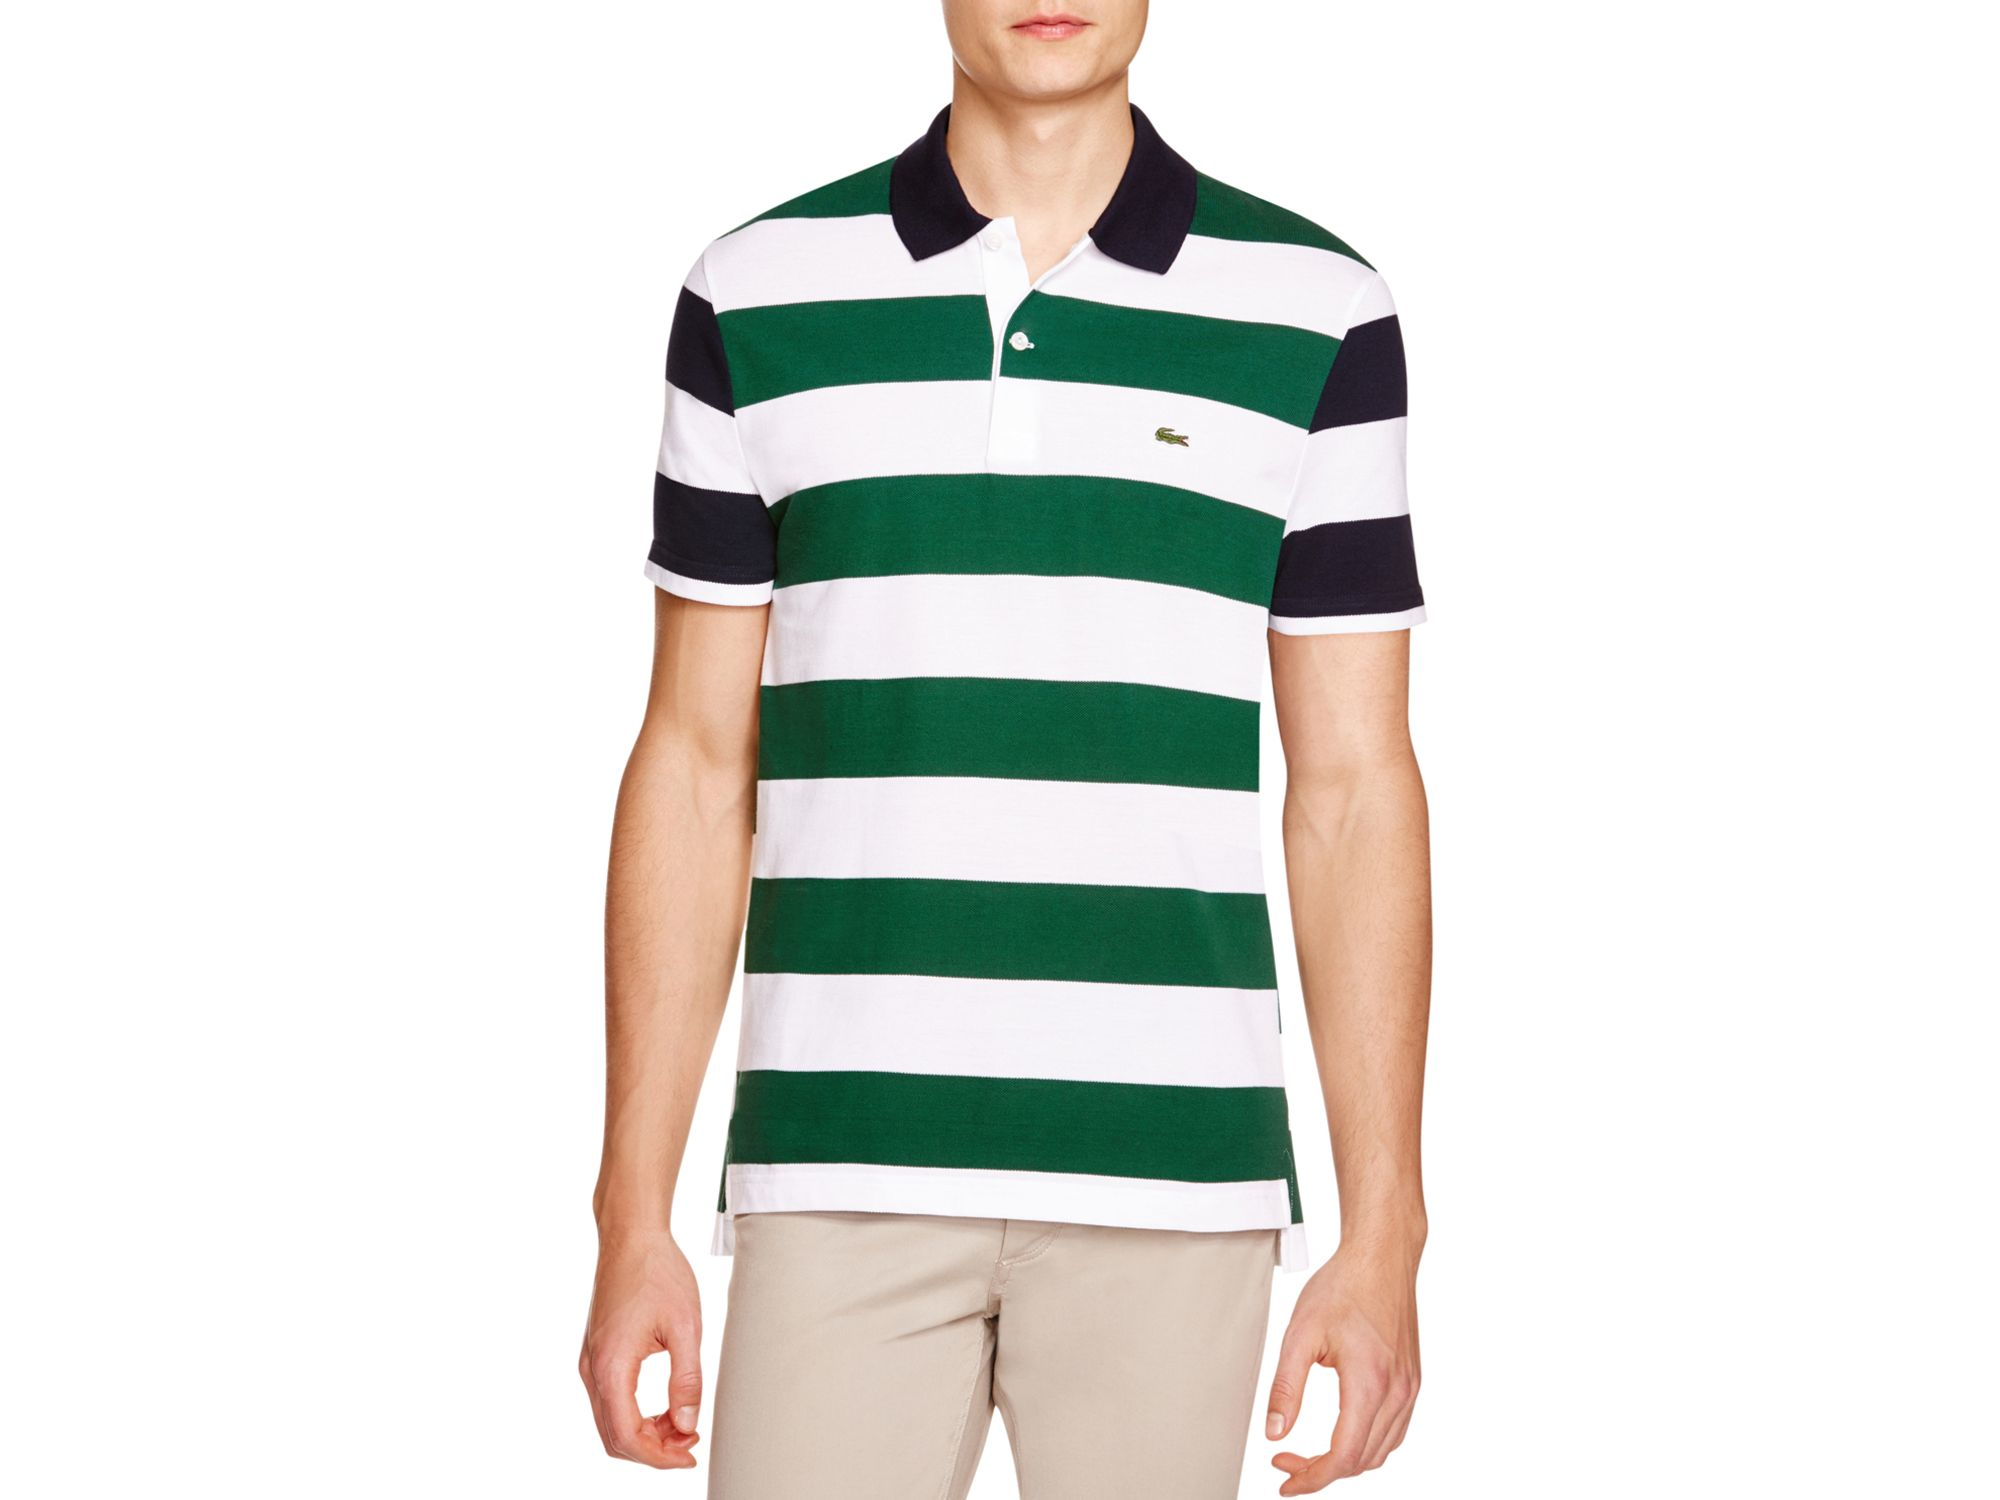 7b50a3e5d7736 Lacoste Mixed Stripe Regular Fit Polo Shirt in Green for Men - Lyst